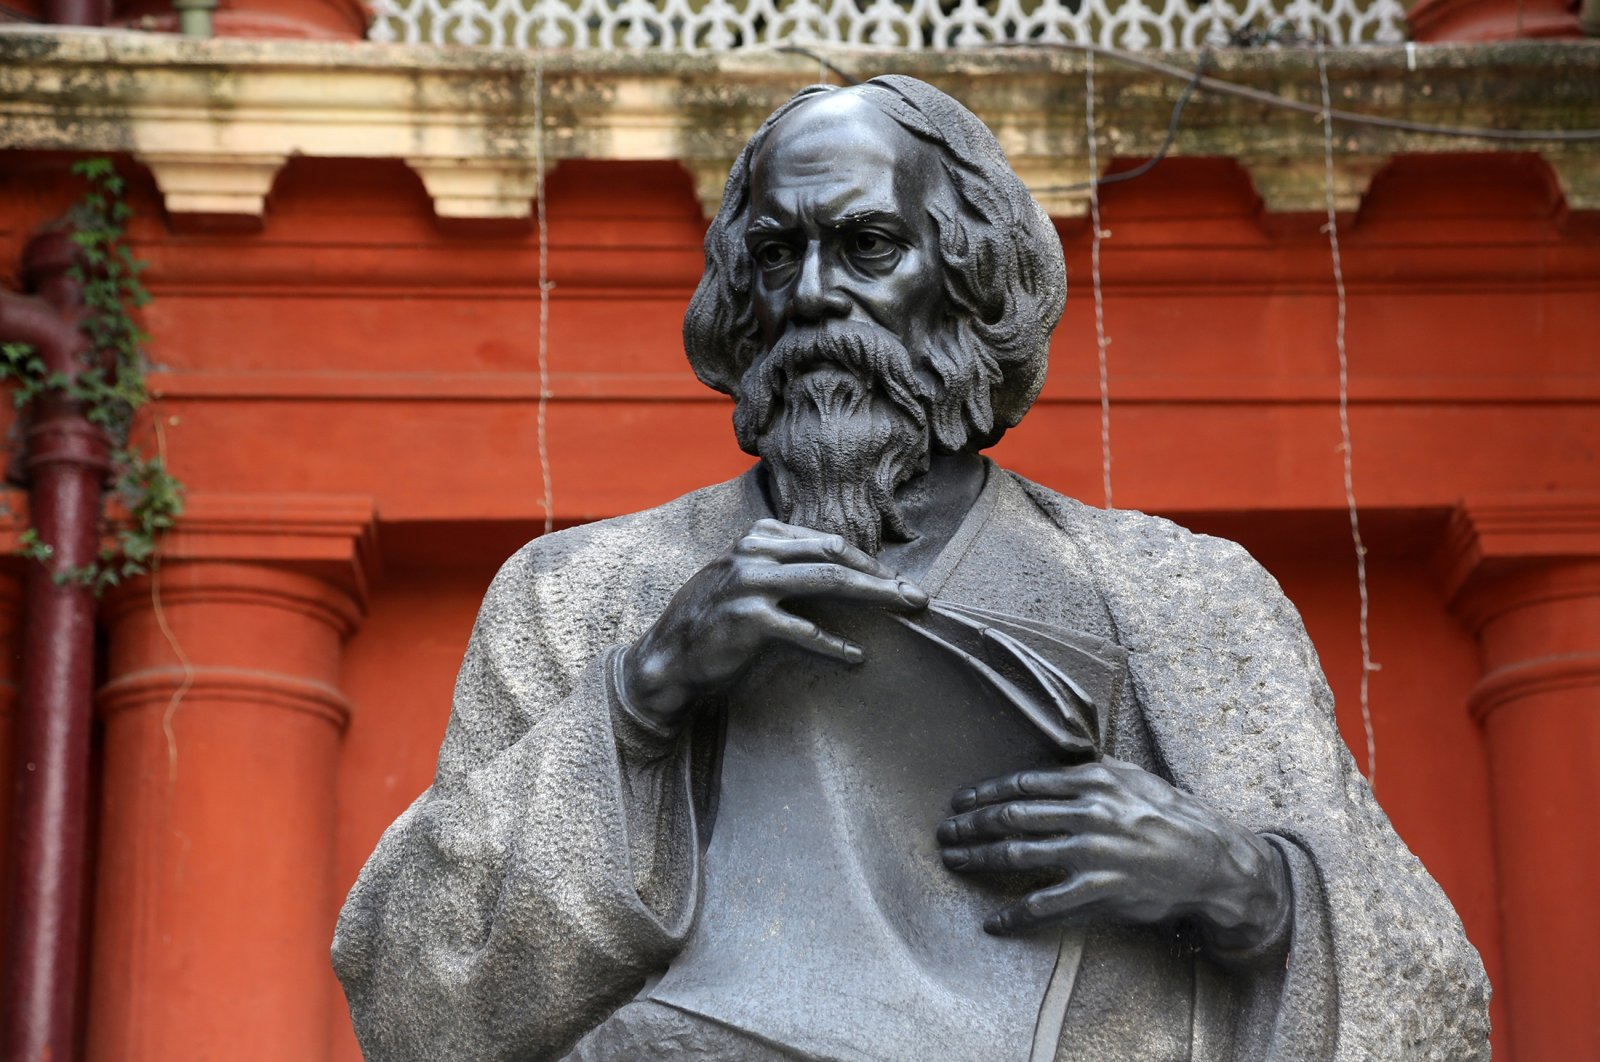 The monument of Rabindranath Tagore, who became the first non-European to win the Nobel Prize in literature in 1913, in Kolkata, India, Feb. 15, 2014.